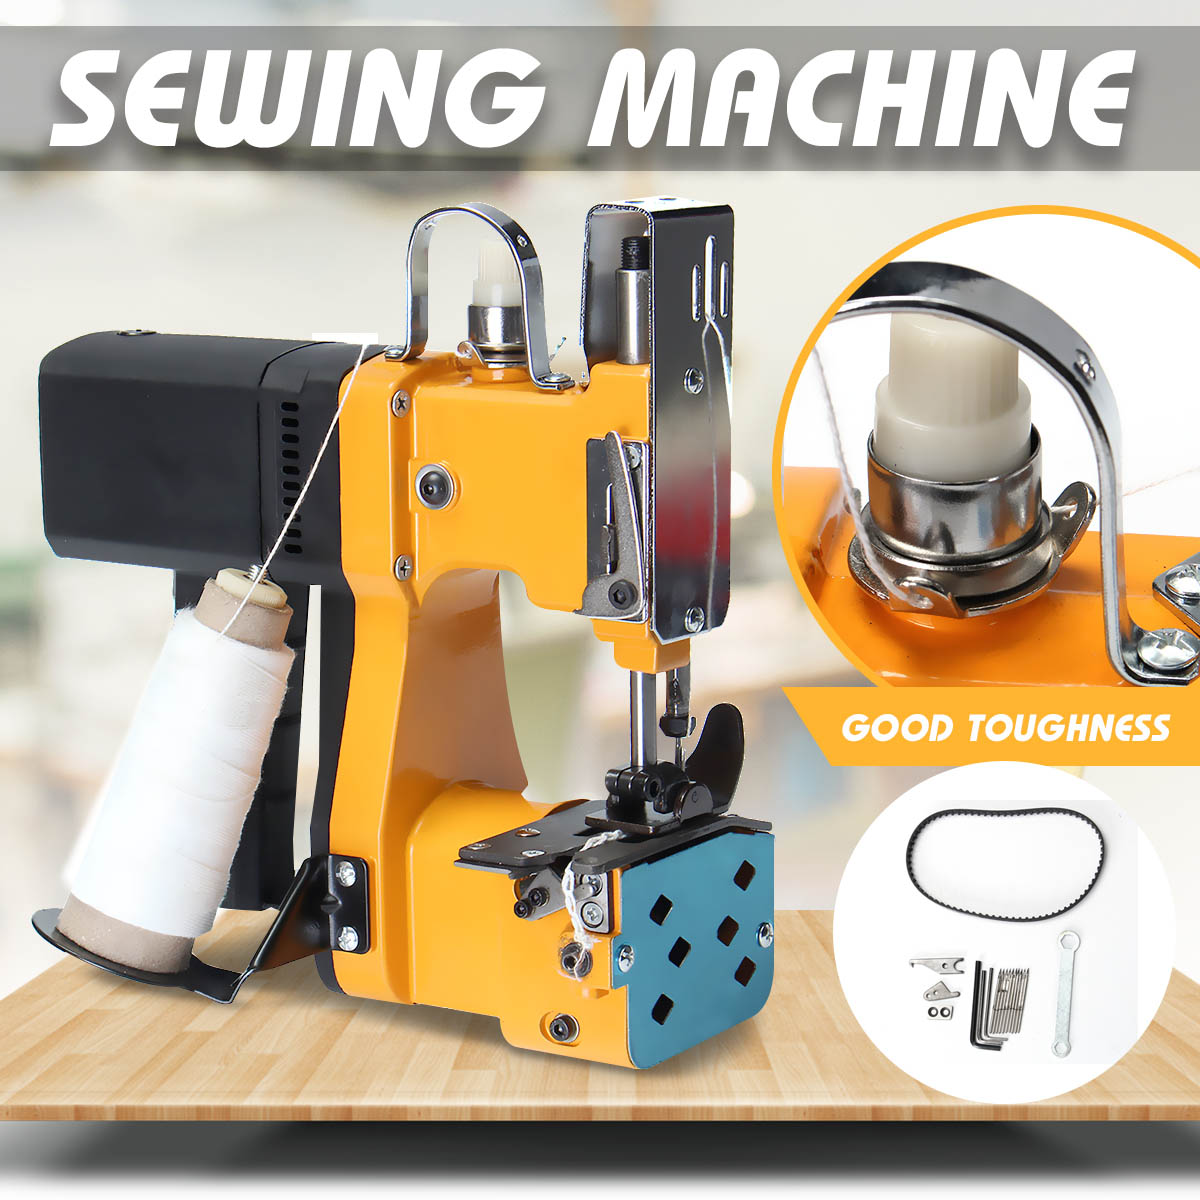 220V Portable Electric Sewing Machine Sealing Machines Kit for Home Textile Industrial Portable Bag Closer Stitching Machine machine